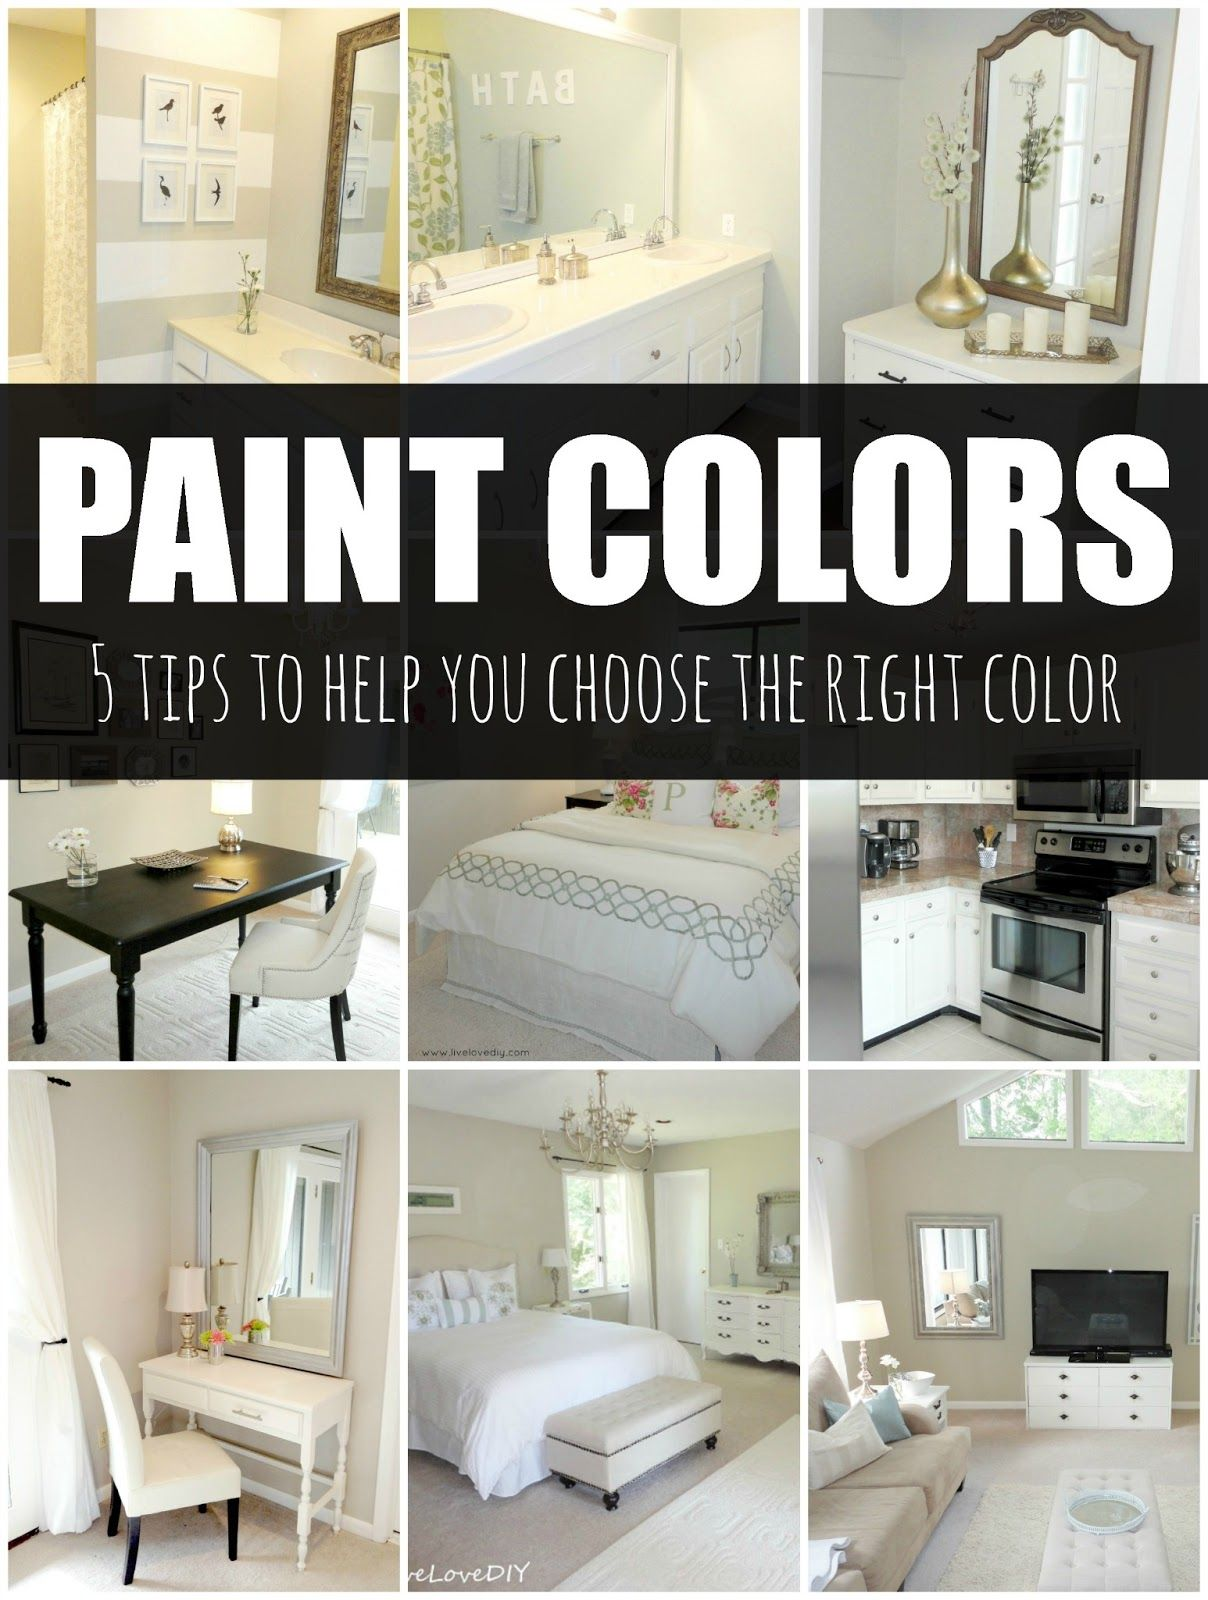 How to choose a paint color: 5 tips to help you choose the right ...